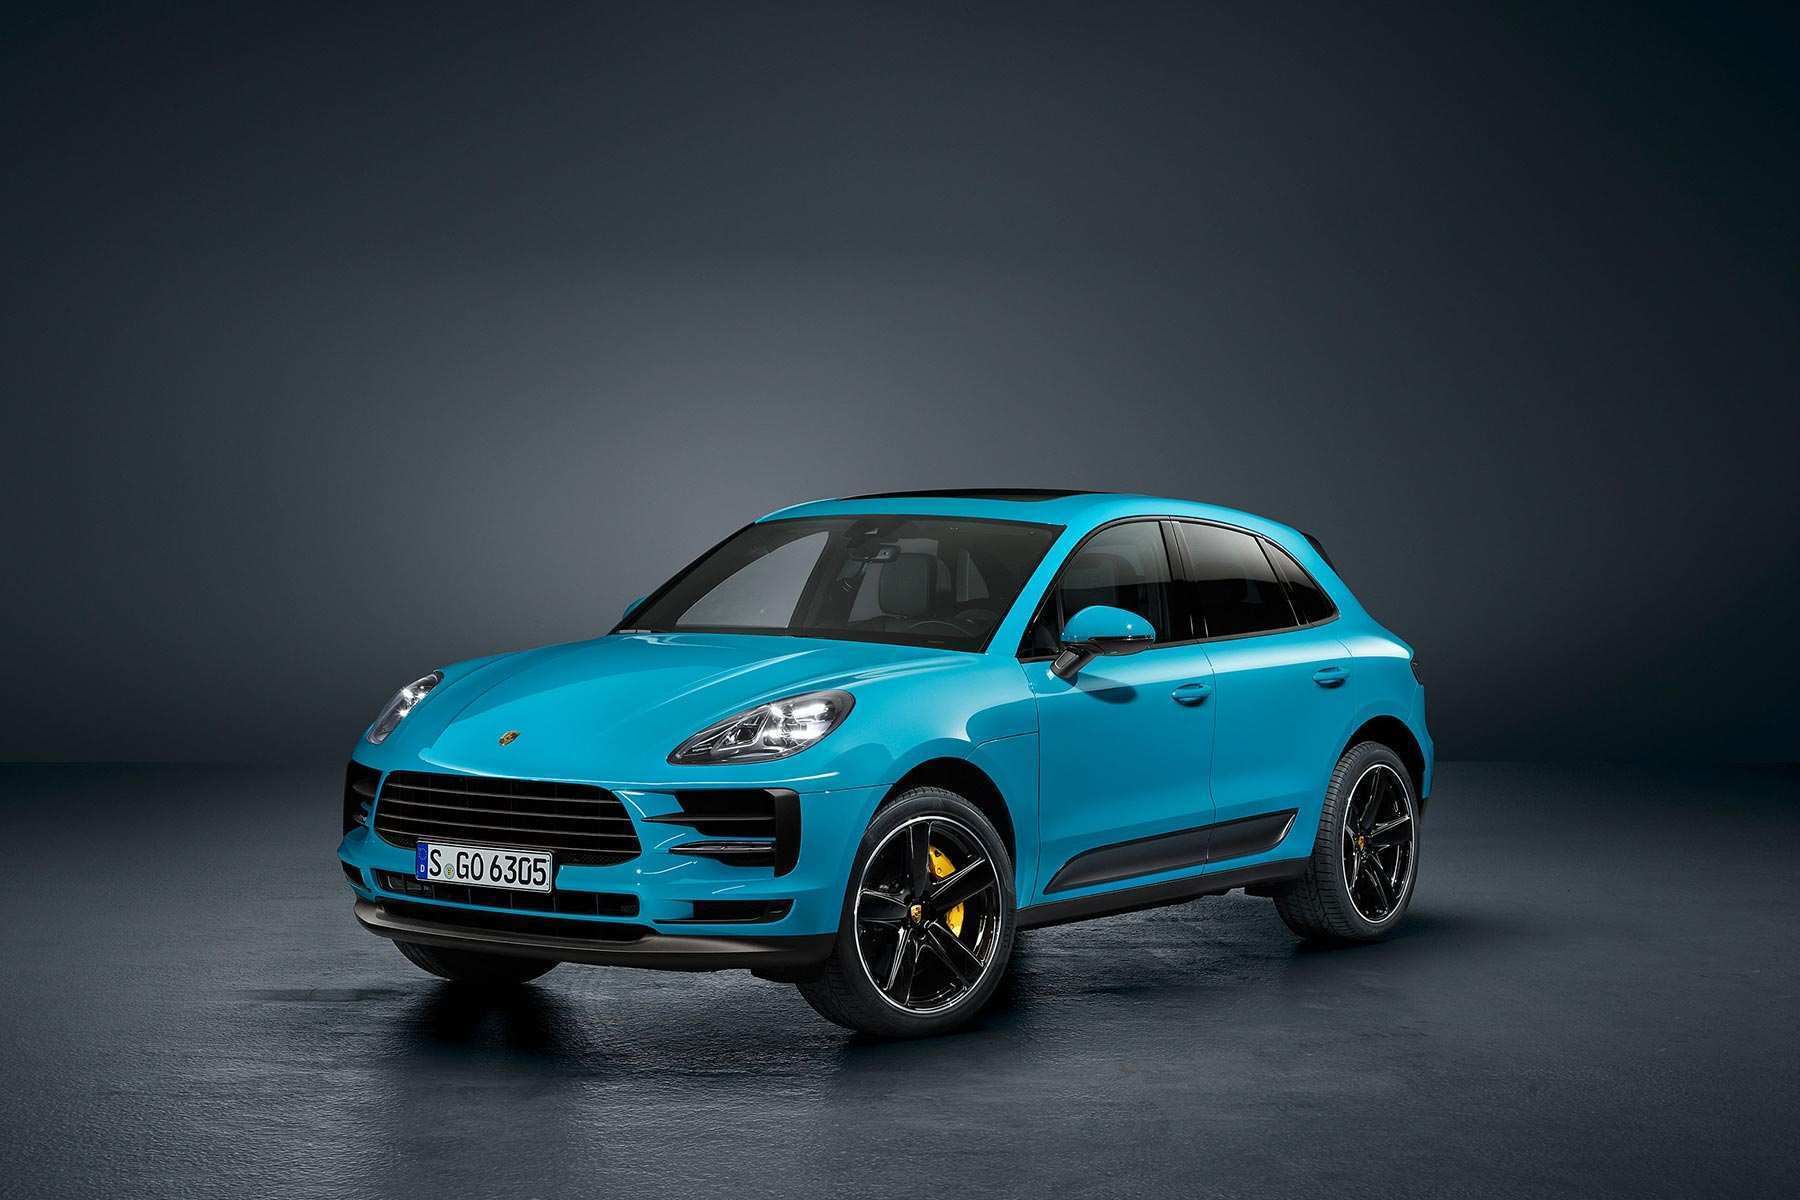 48 Best Review 2019 Porsche Macan Hybrid Photos with 2019 Porsche Macan Hybrid